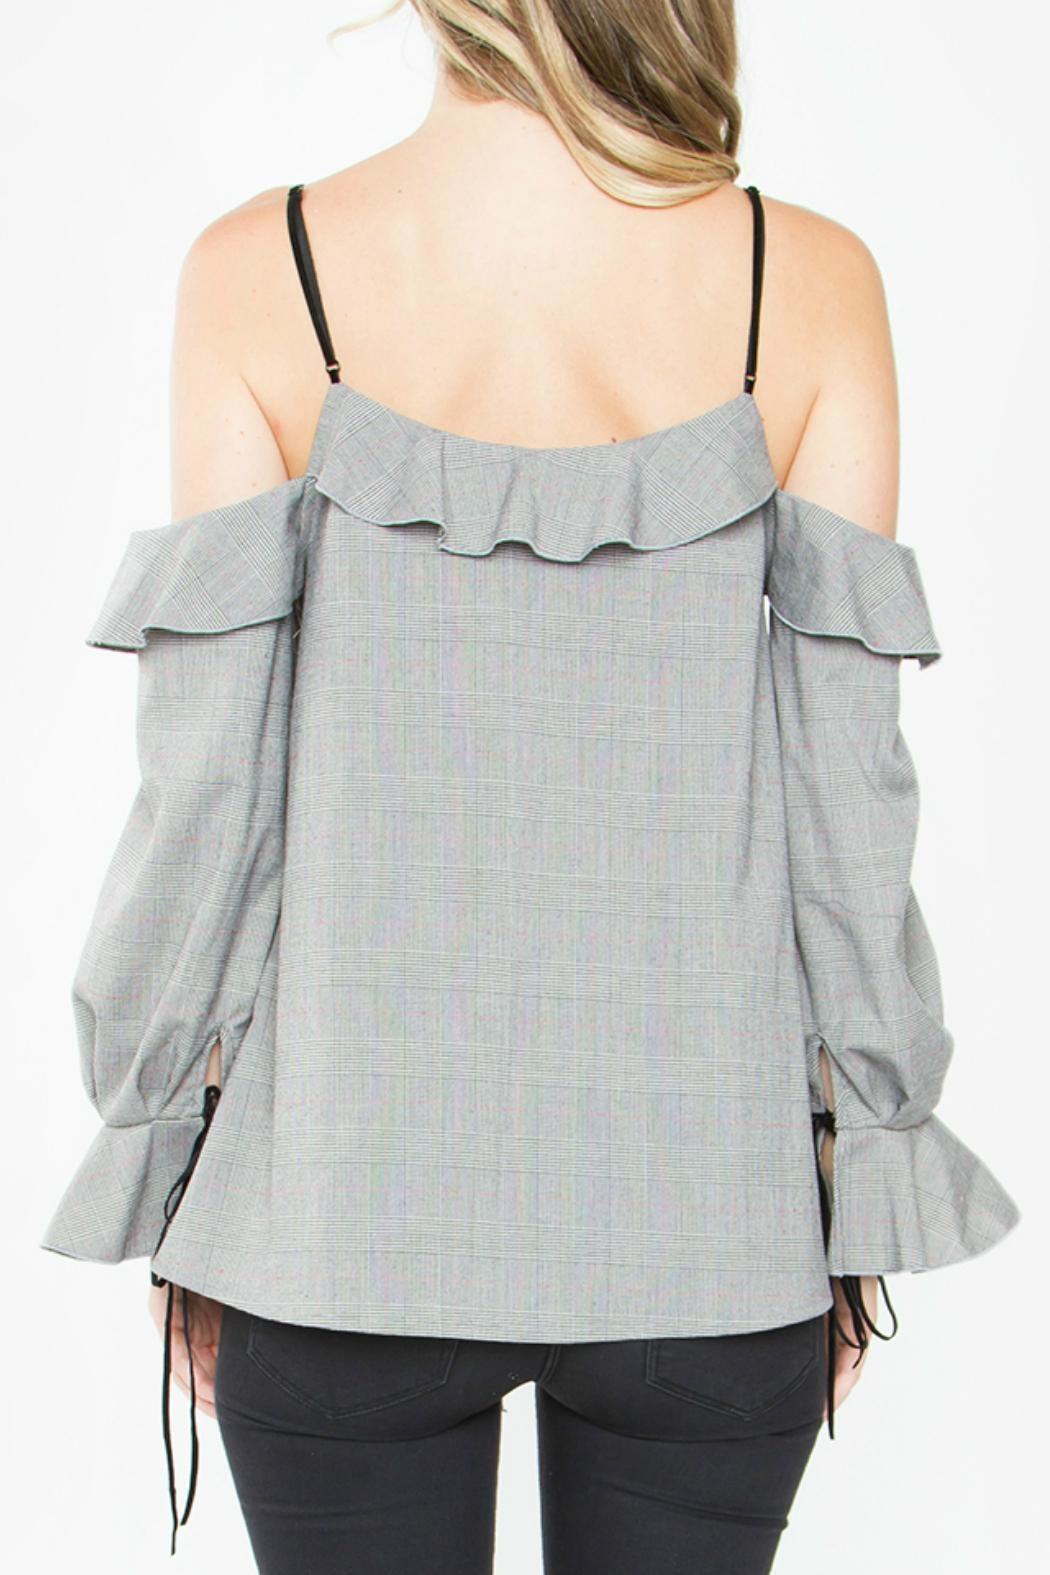 Sugar Lips Grey Cold Shoulder Top - Front Full Image